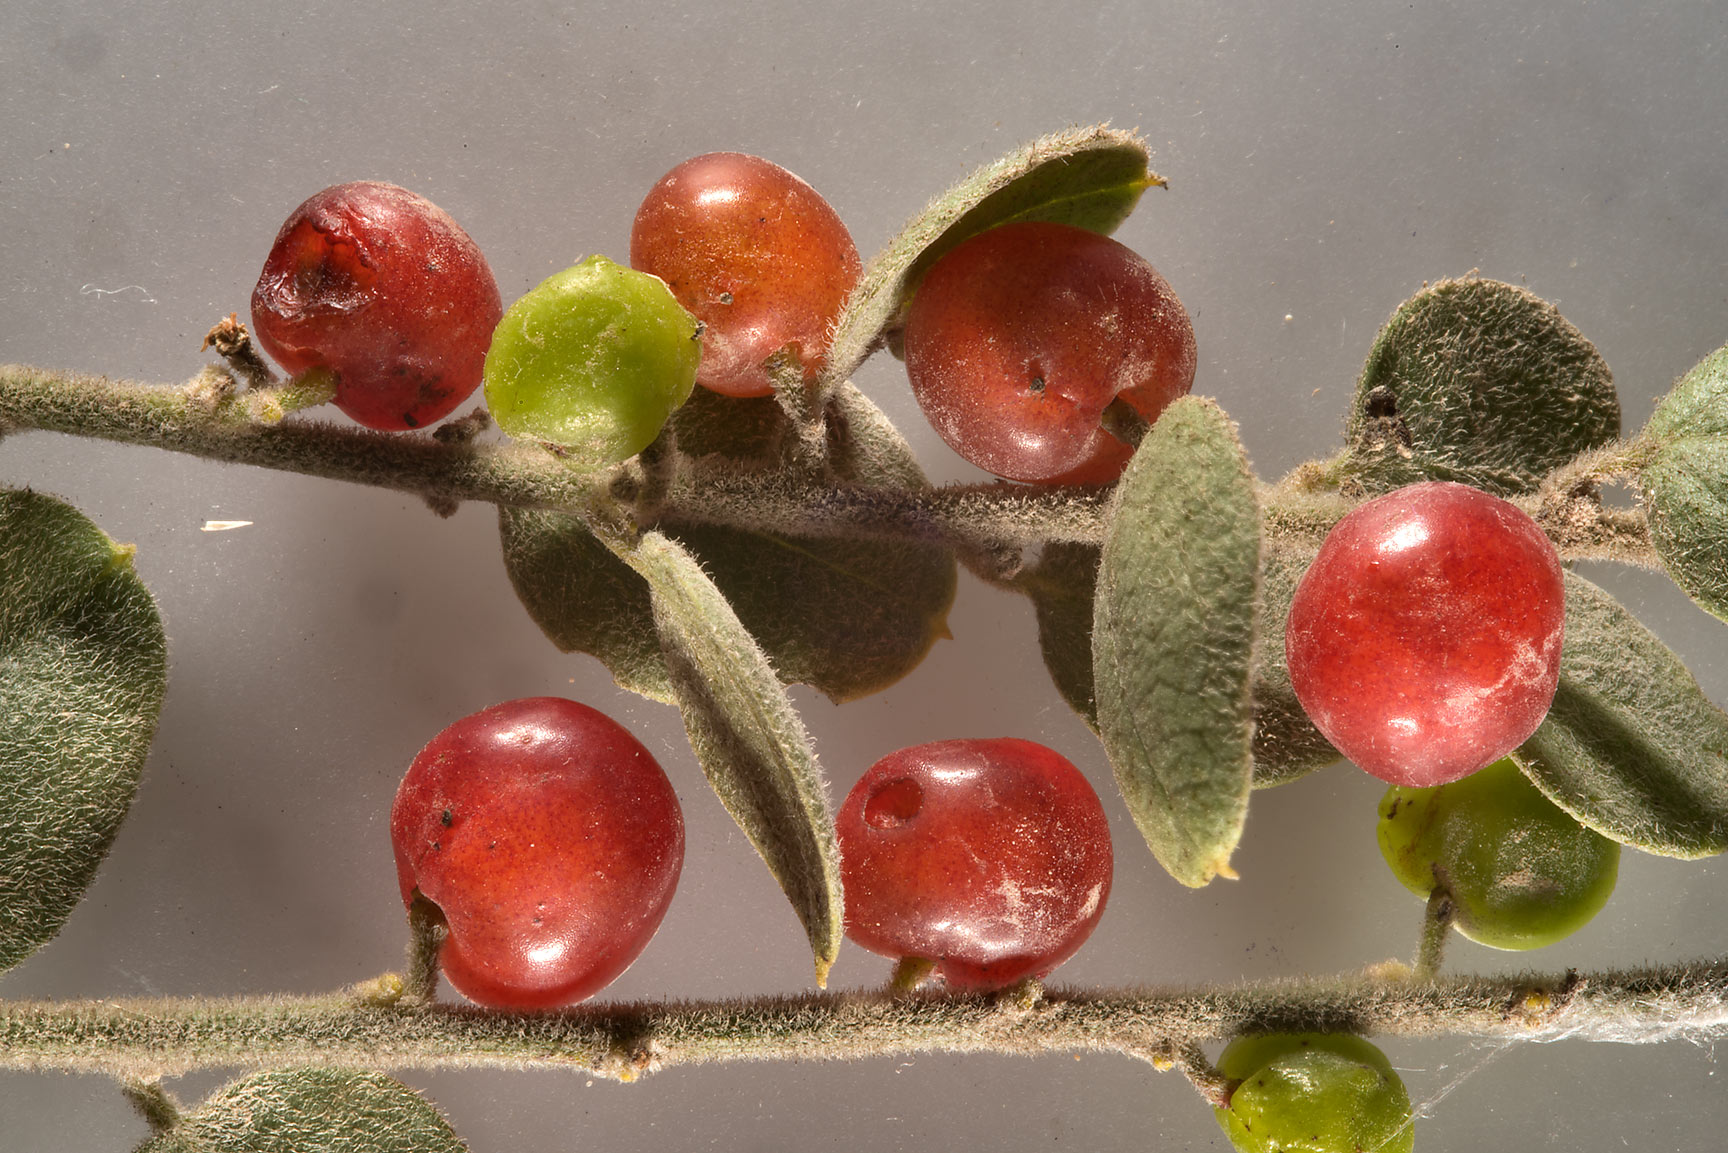 Red berries of Cocculus pendulus (local names...from Khawzan to Al-Jumayliyah. Qatar